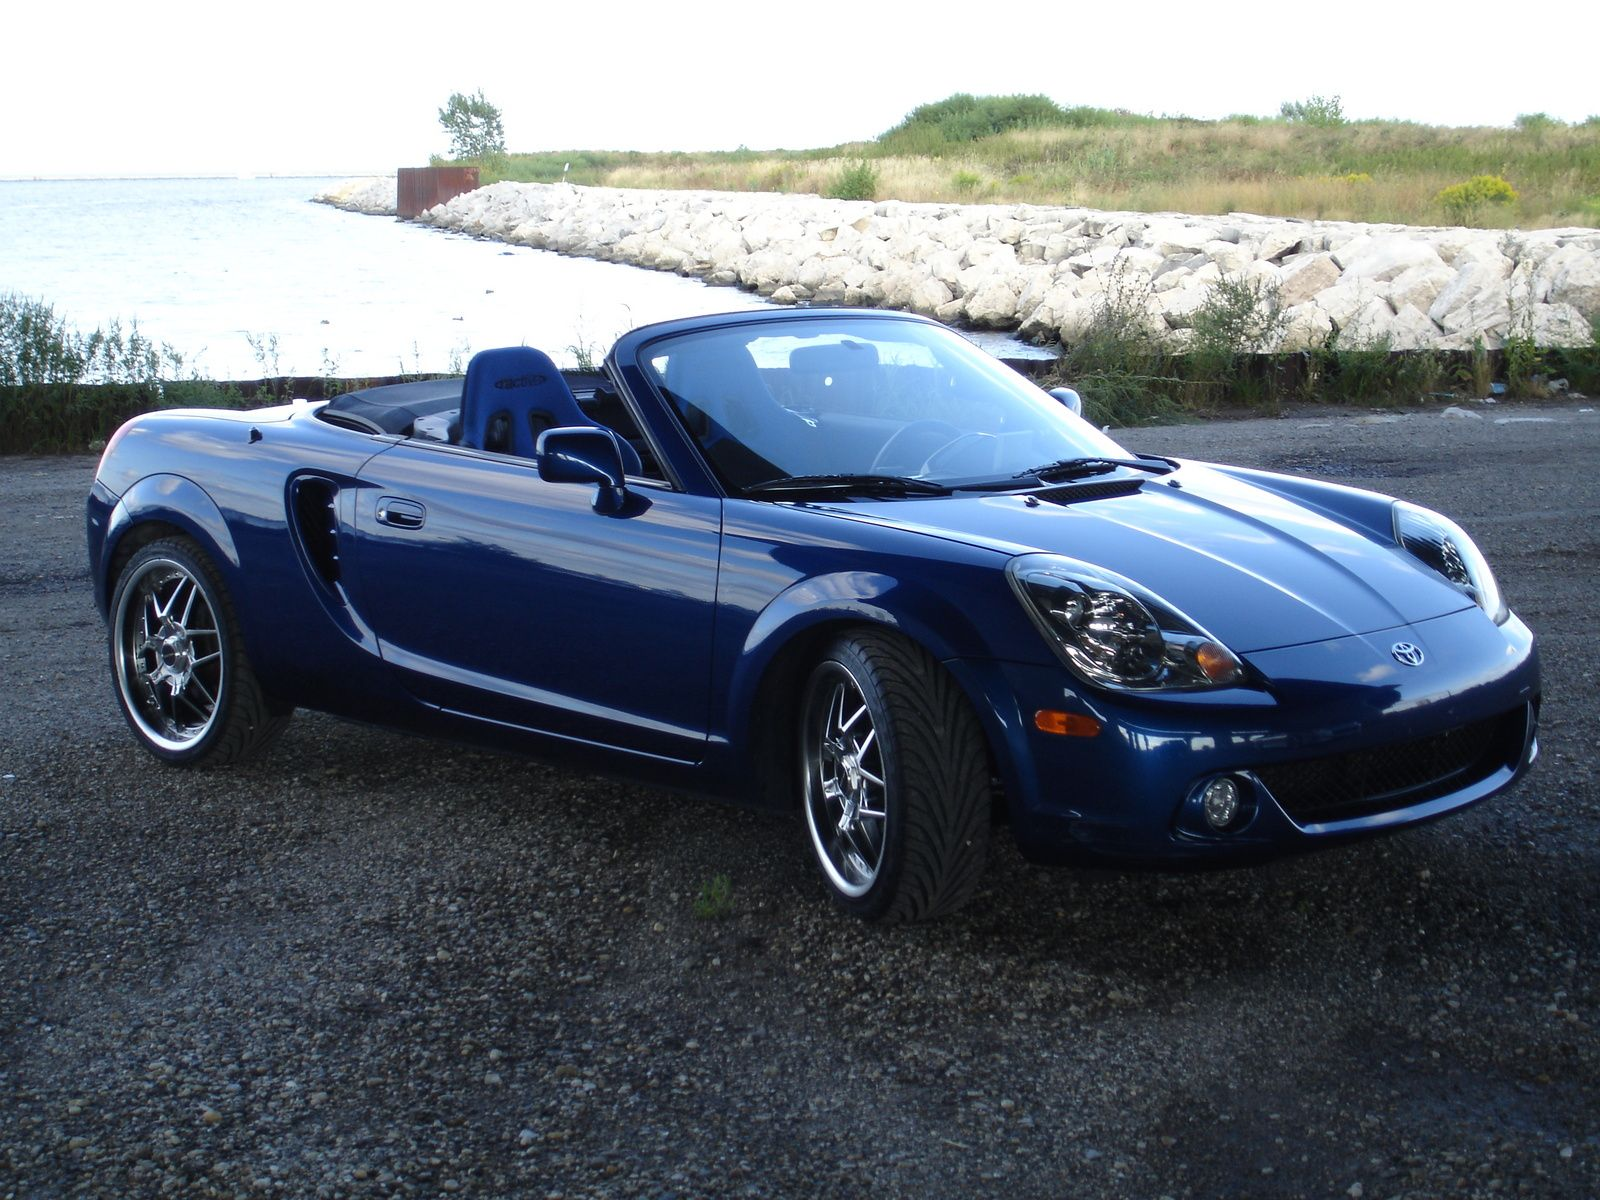 2003 Toyota Mr2 Spyder 138 Hp 0 60 7 Seconds Top Sd 129 Mph Good Used One S Are Available From 5750 9750